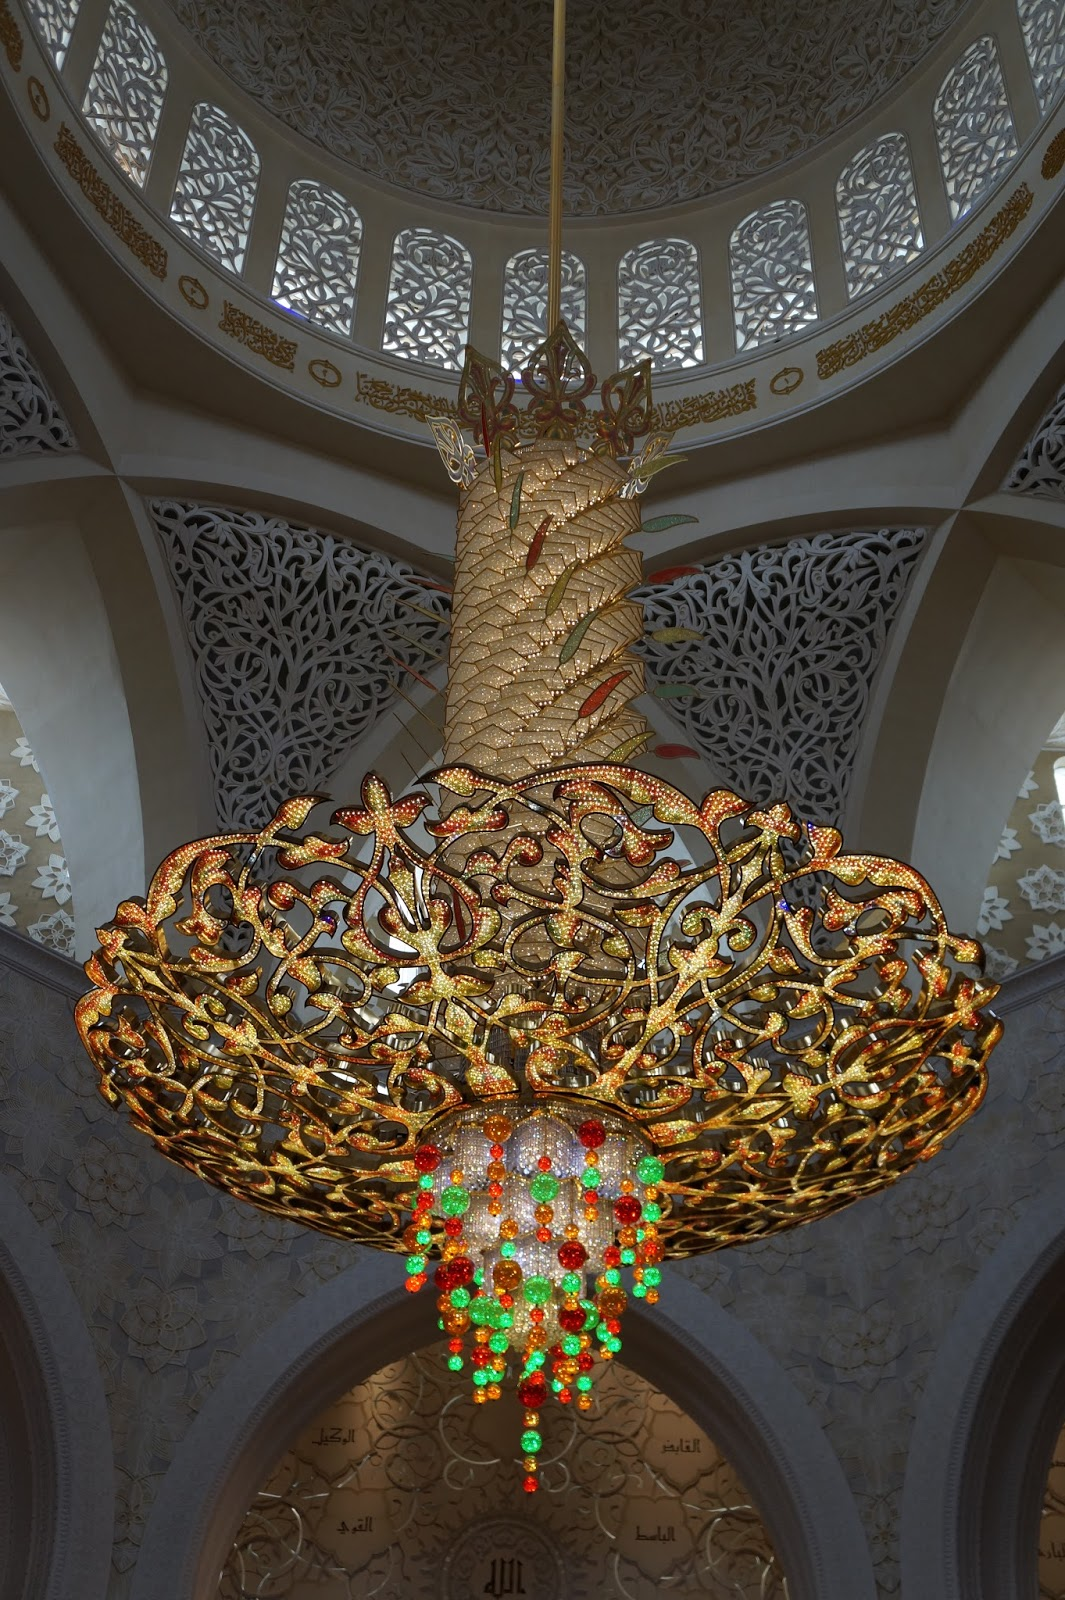 Aliholli march 2016 the largest chandelier is the second largest known chandelier inside a mosque the third largest in the world and has a 10 m 33 ft diameter and a 15 m 49 arubaitofo Image collections